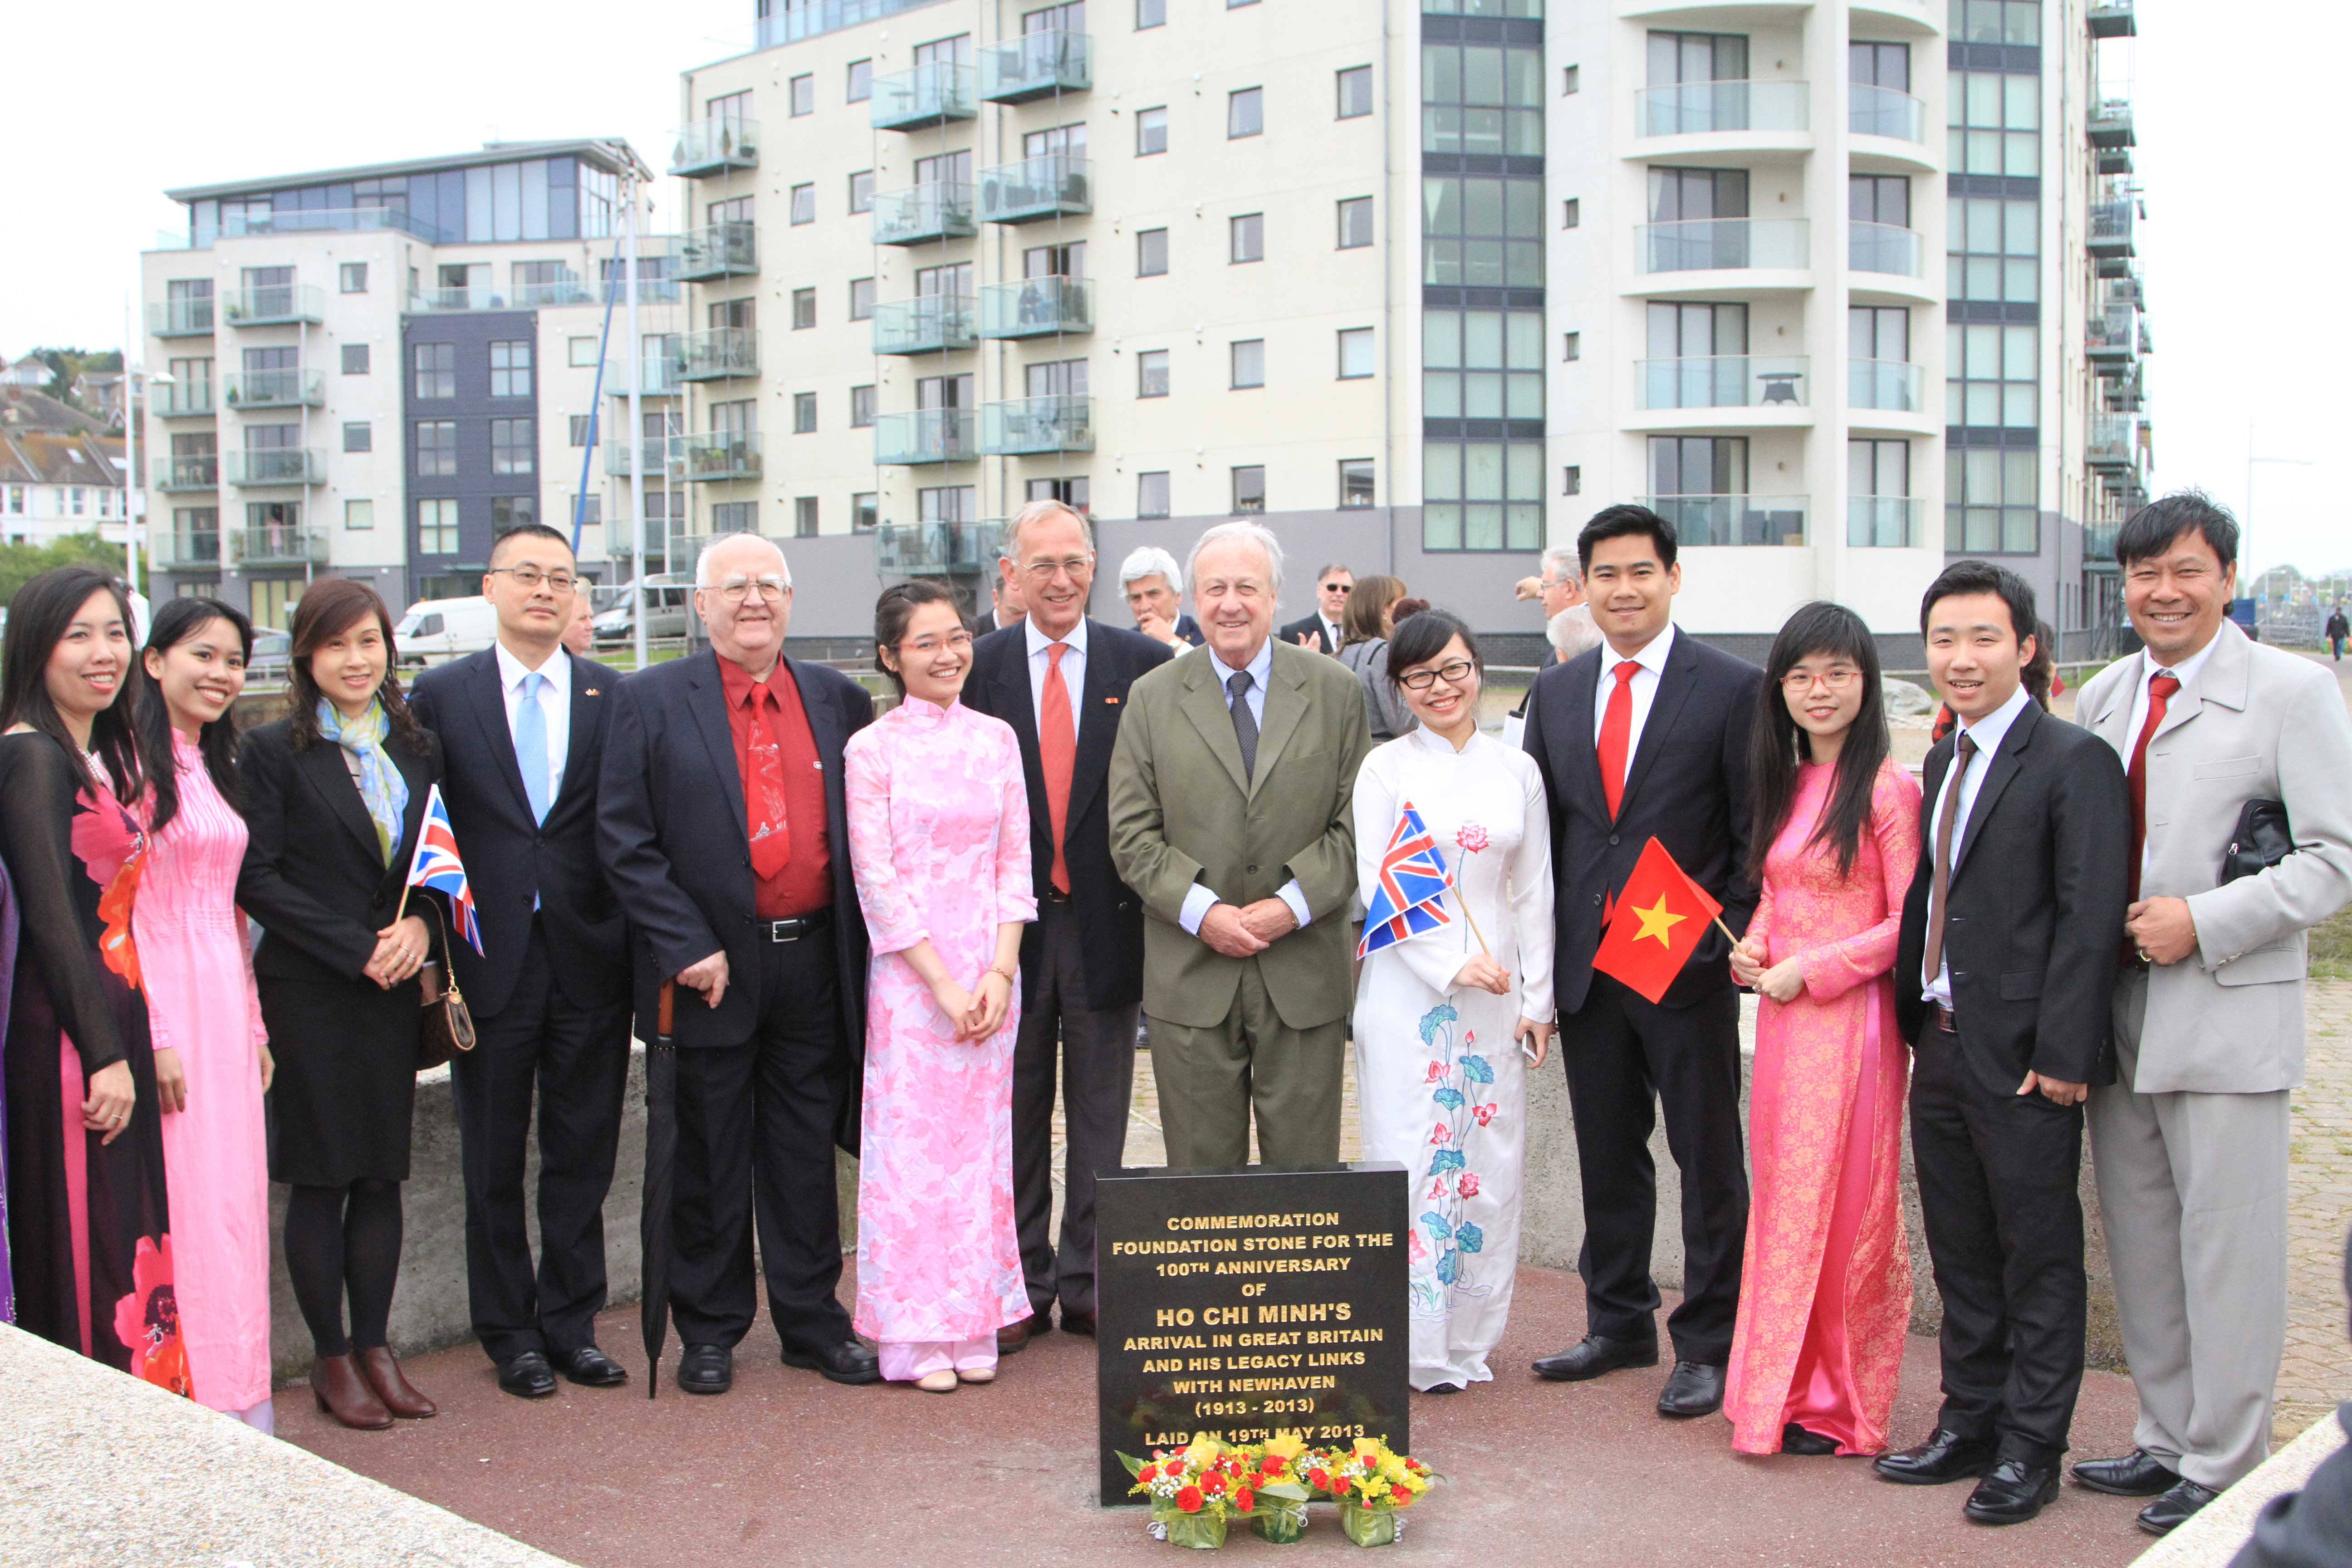 President Ho Chi Minh's link to Newhaven celebrated